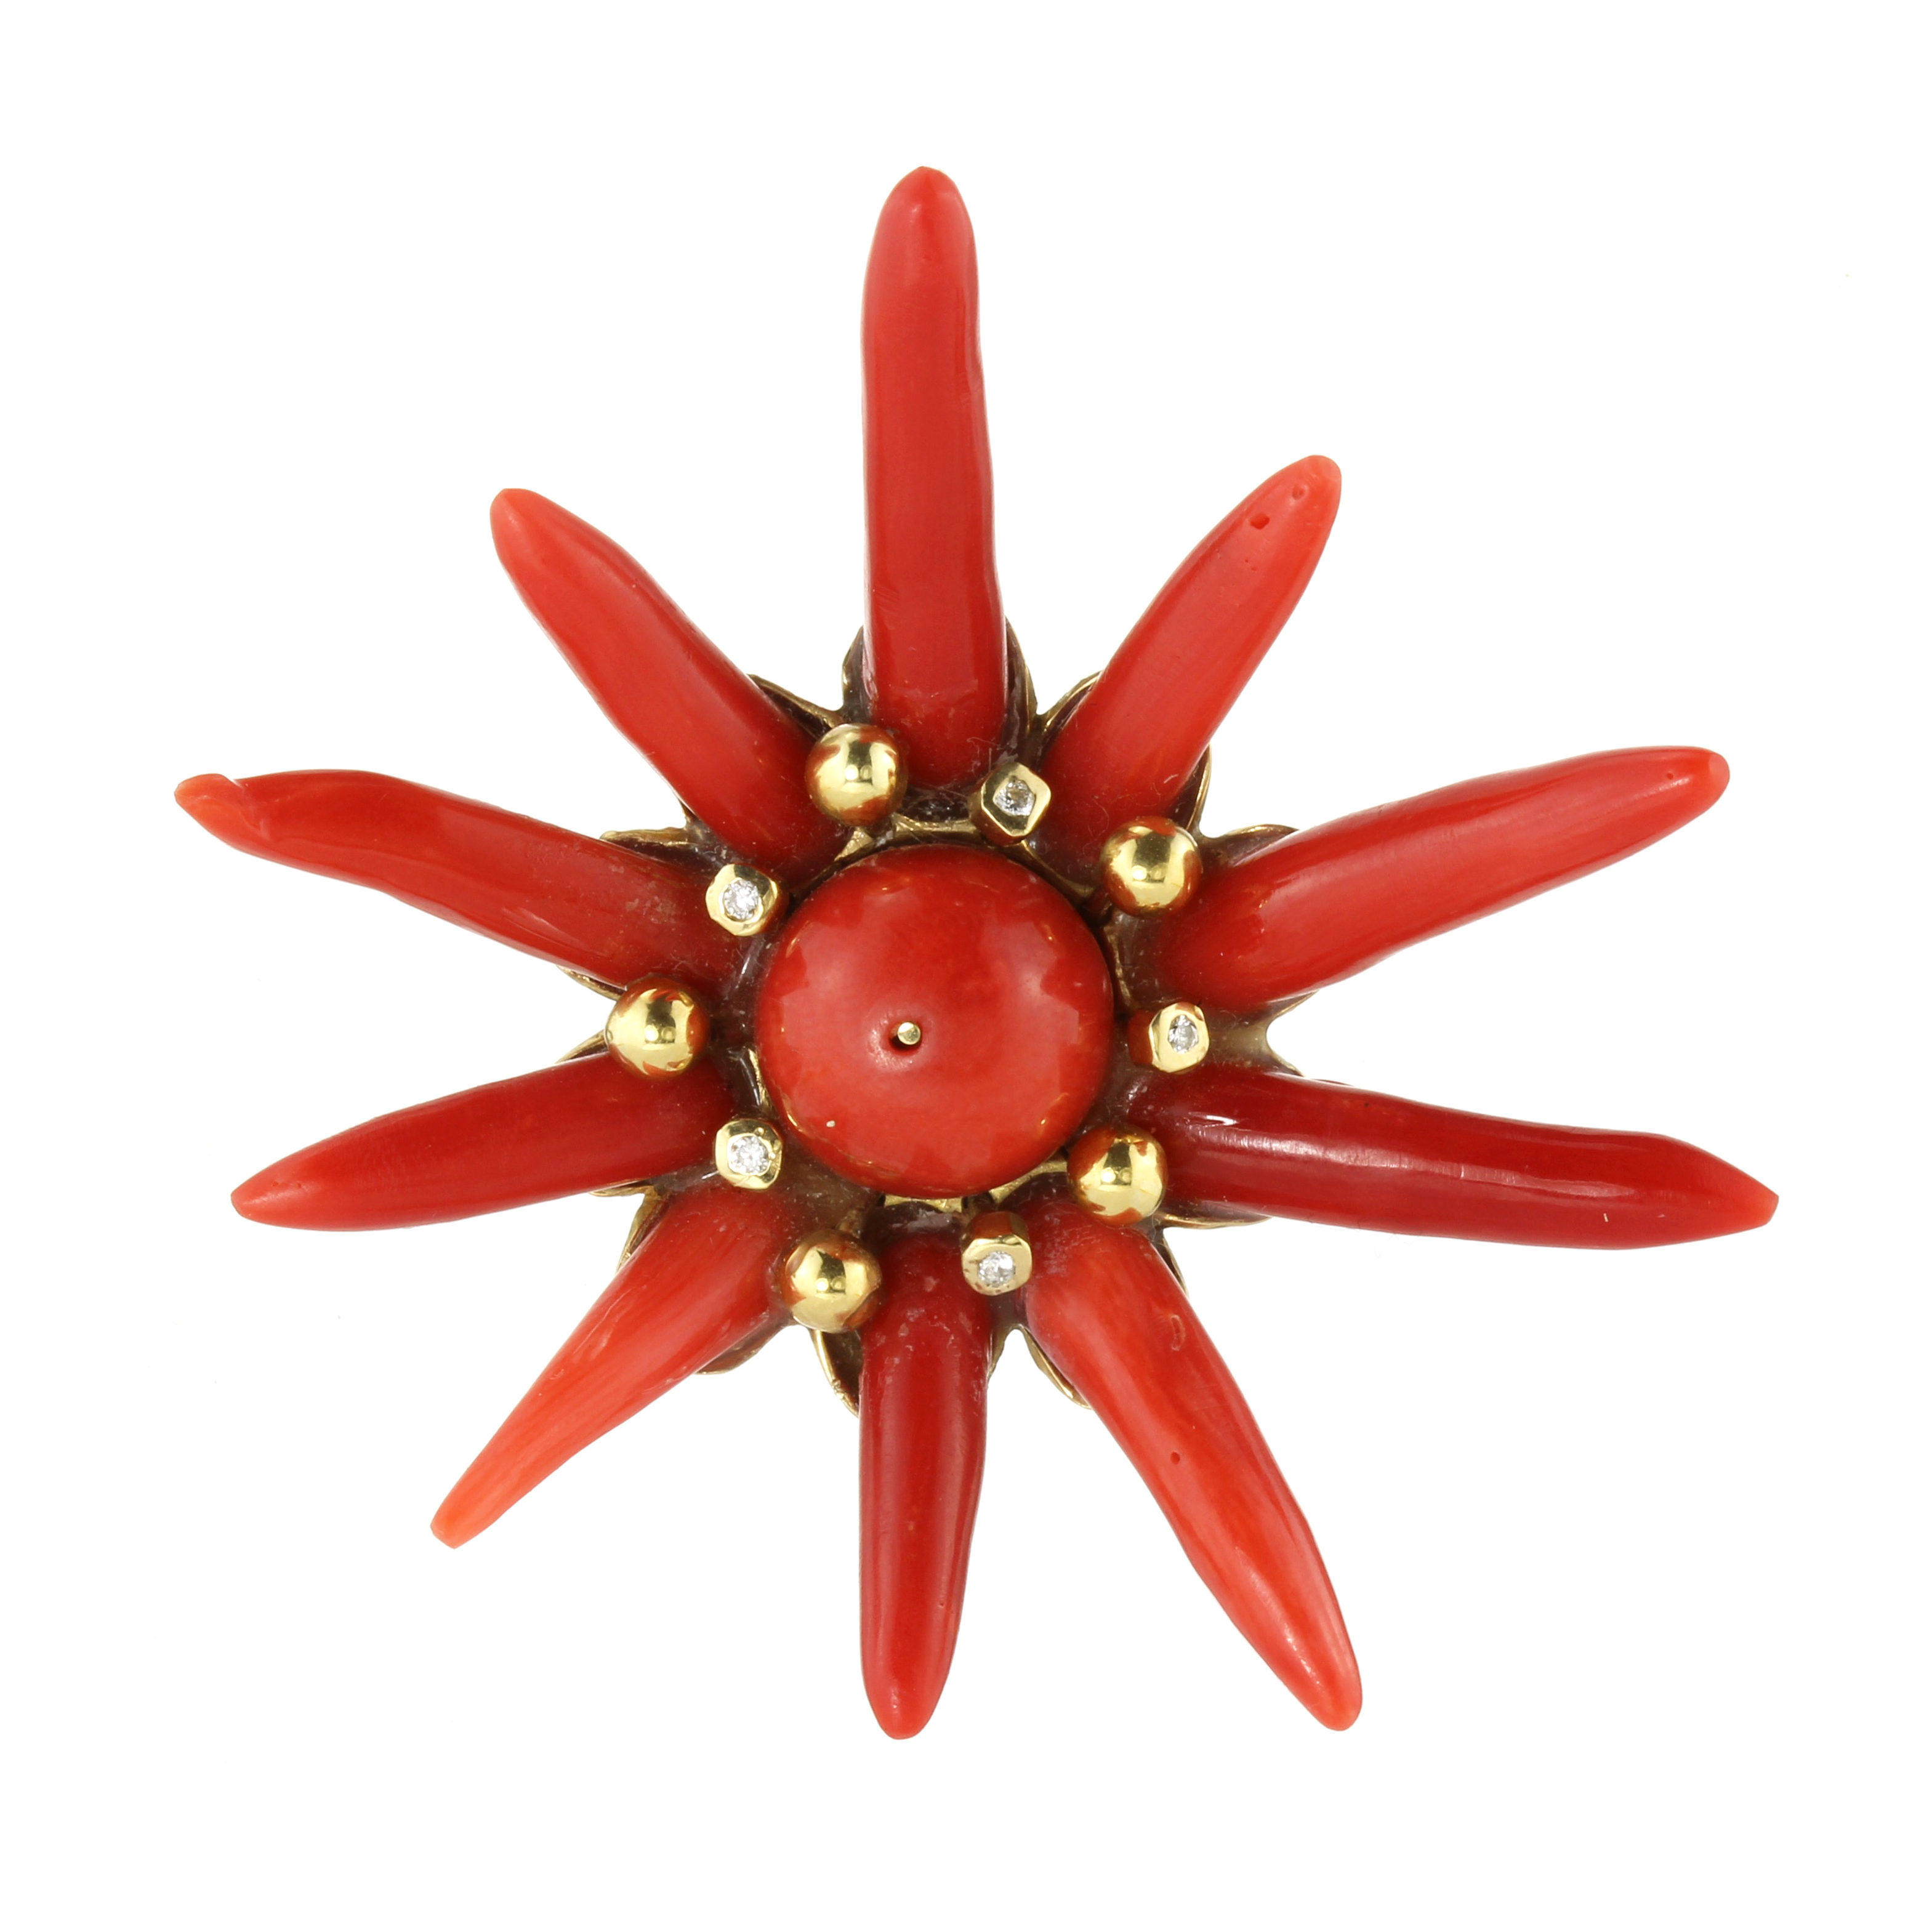 AN CORAL PENDANT in 18ct yellow gold, set with a central polished coral bead of 12mm surrounded by a